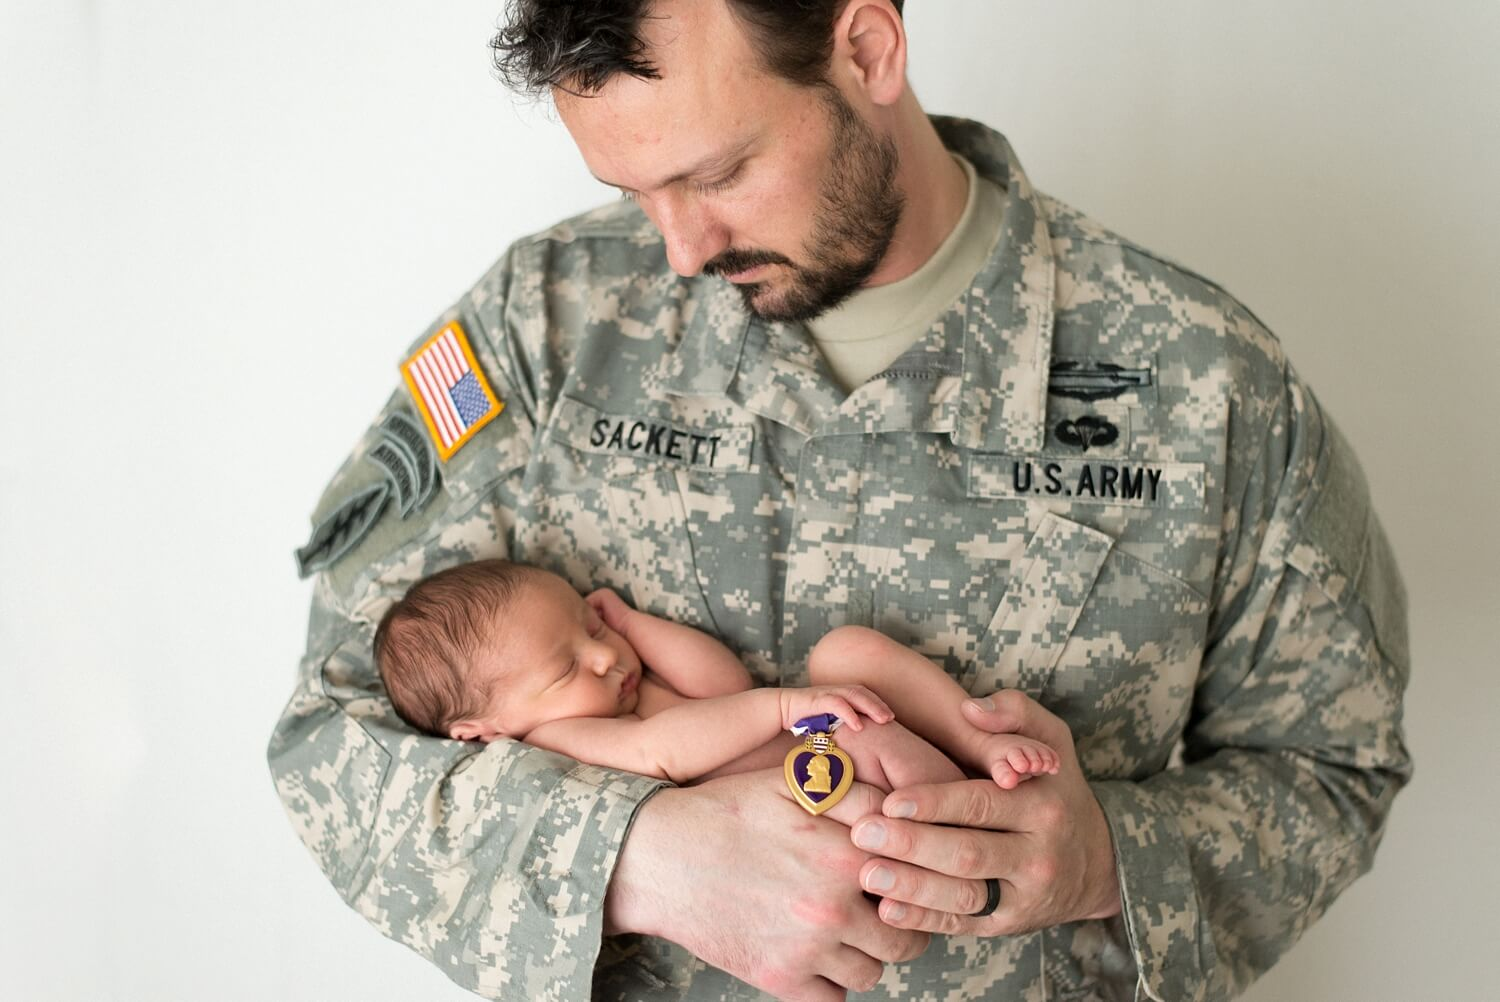 best-portland-oregon-newborn-photographer-veteran-military-dad-purple-heart-and-baby-shelley-marie-photo-1.jpg